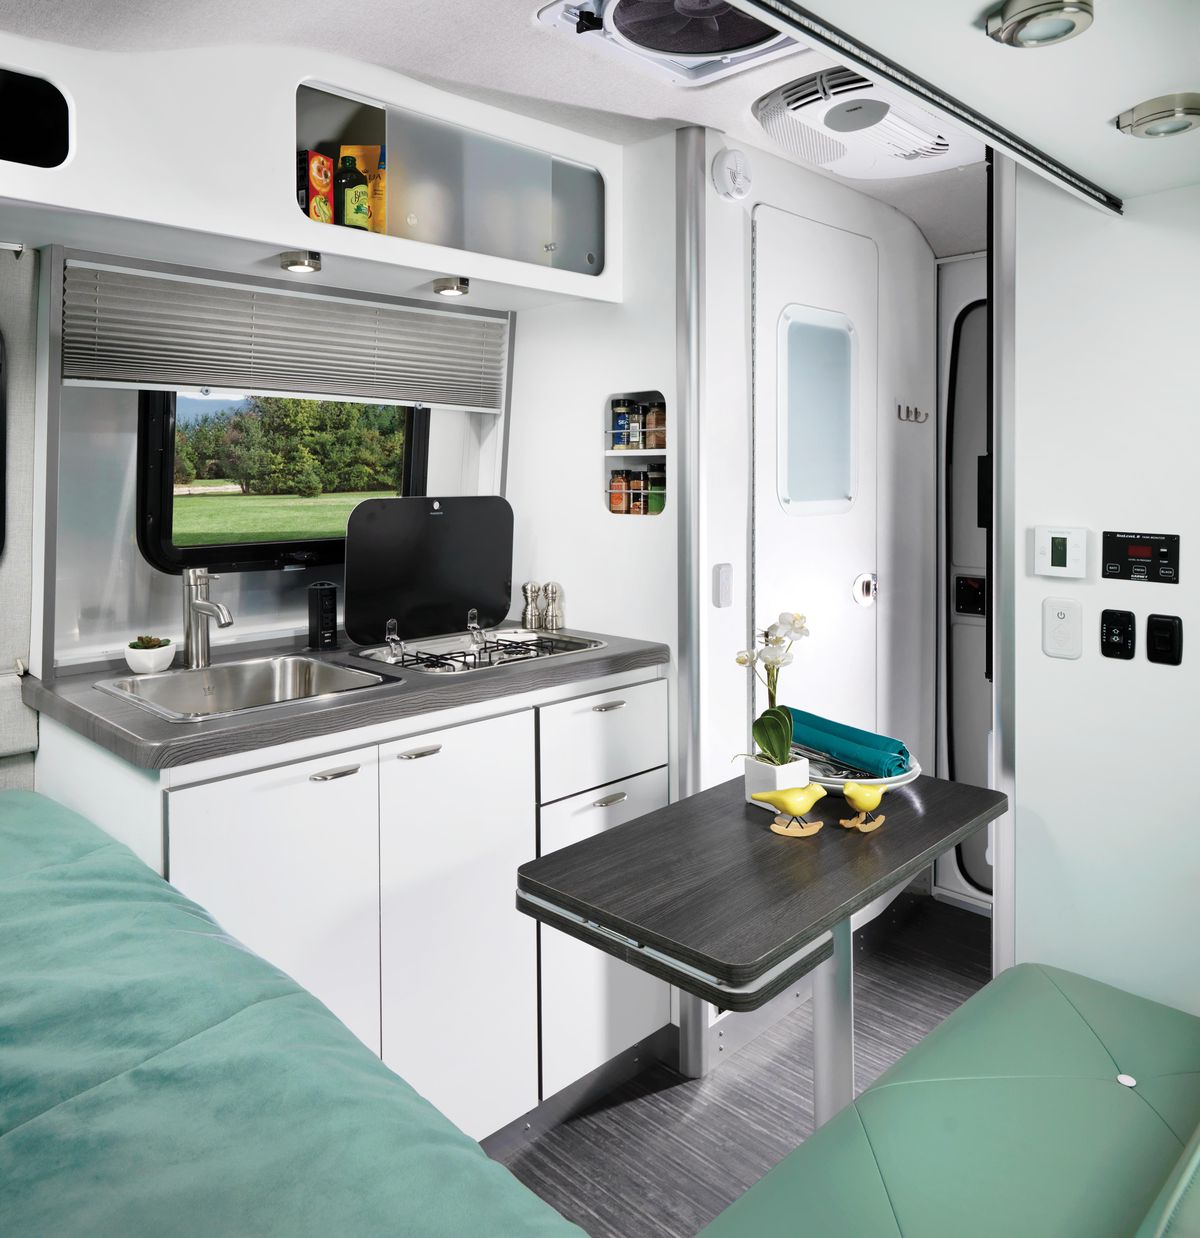 Airstream\'s new trailer, Nest, offers compact luxury for $45K - Curbed